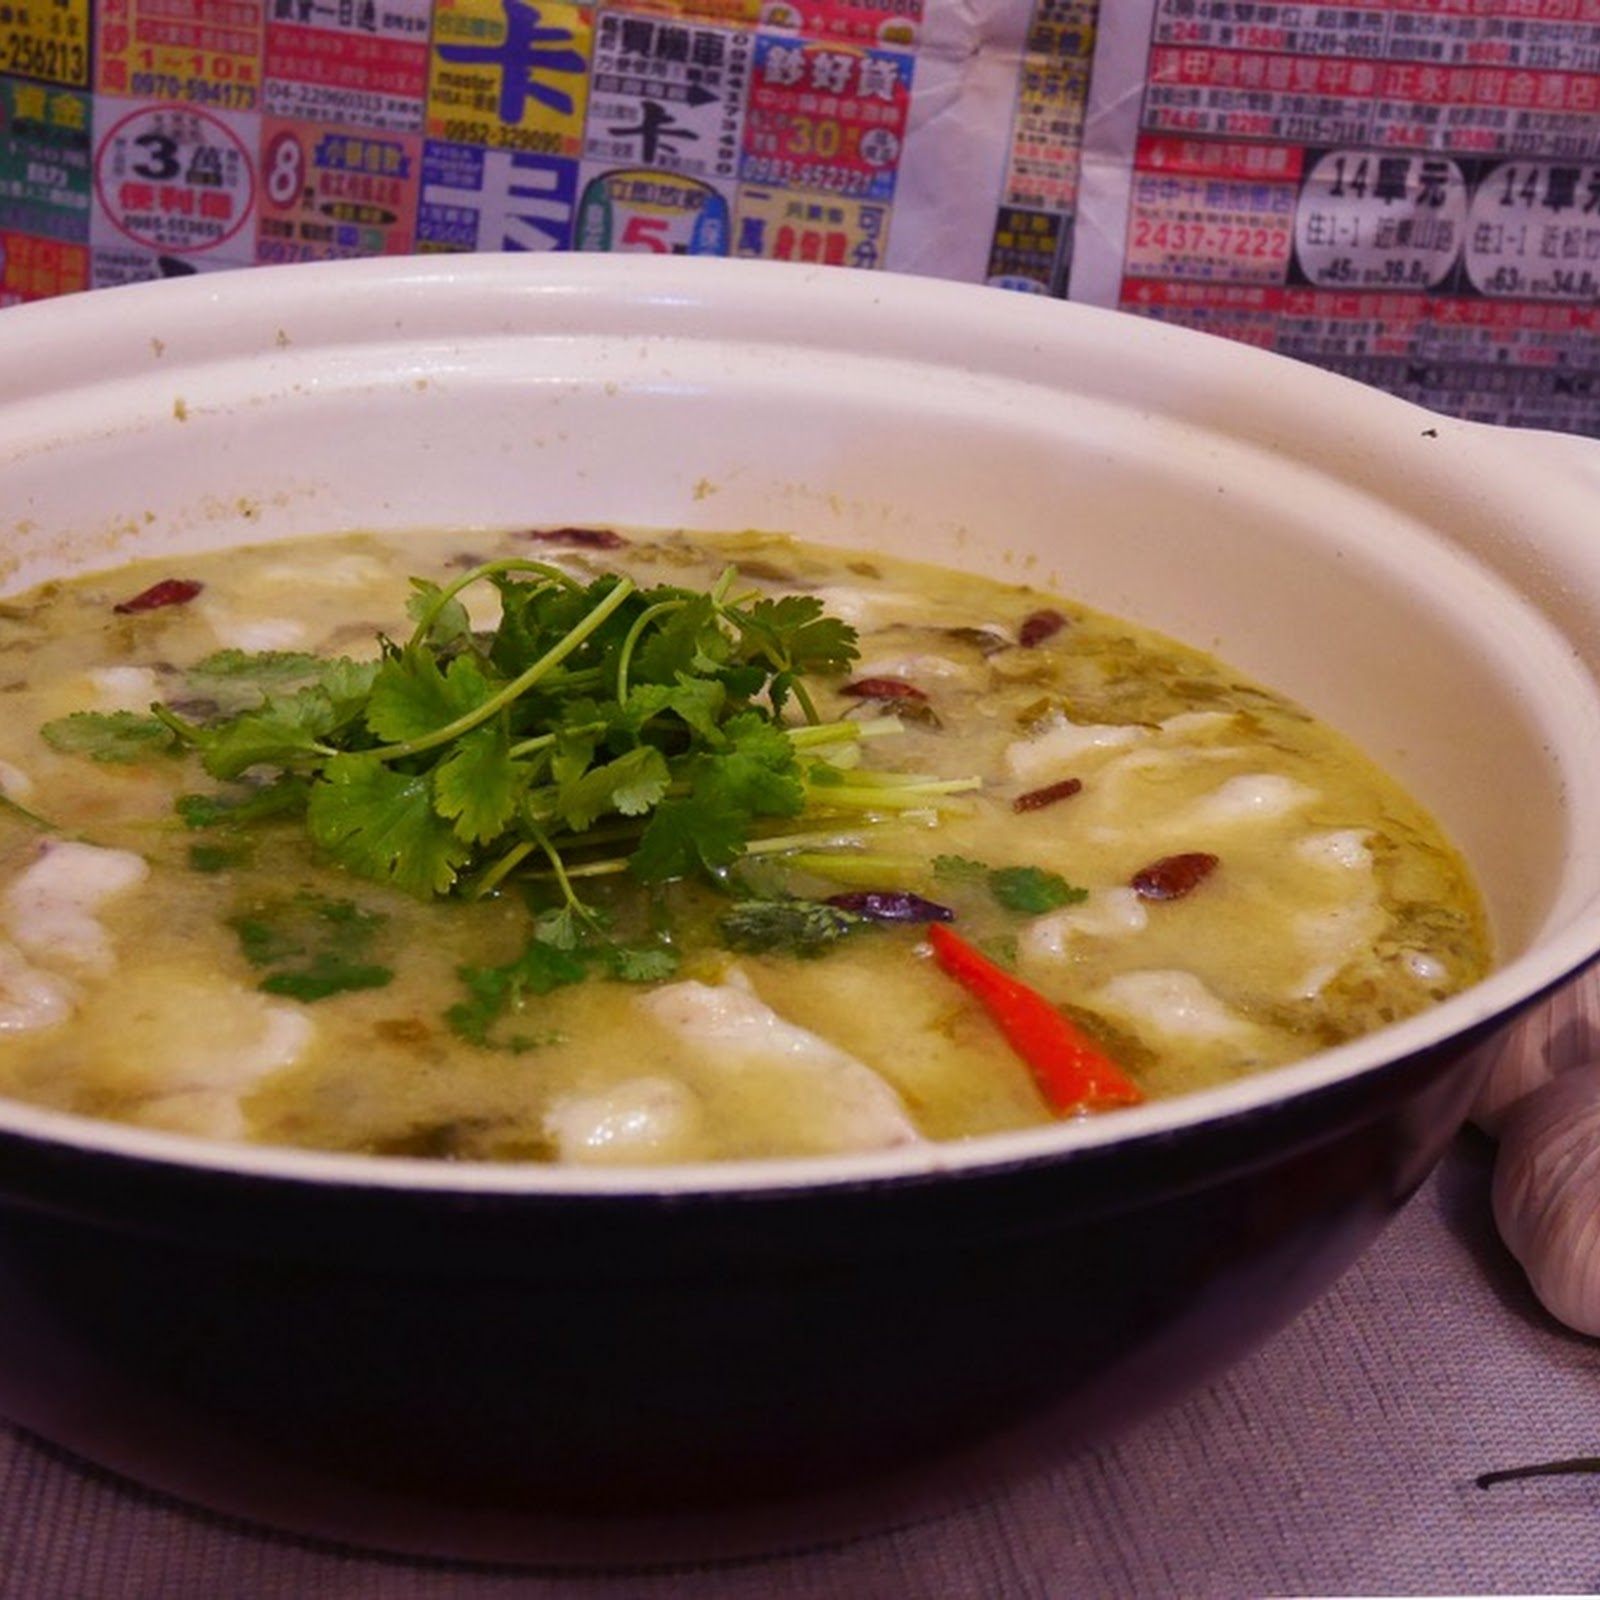 酸菜魚 Hot and Sour Fish Soup with Pickled Greens -【老娘的草根飯堂OldLady's Kitchen】